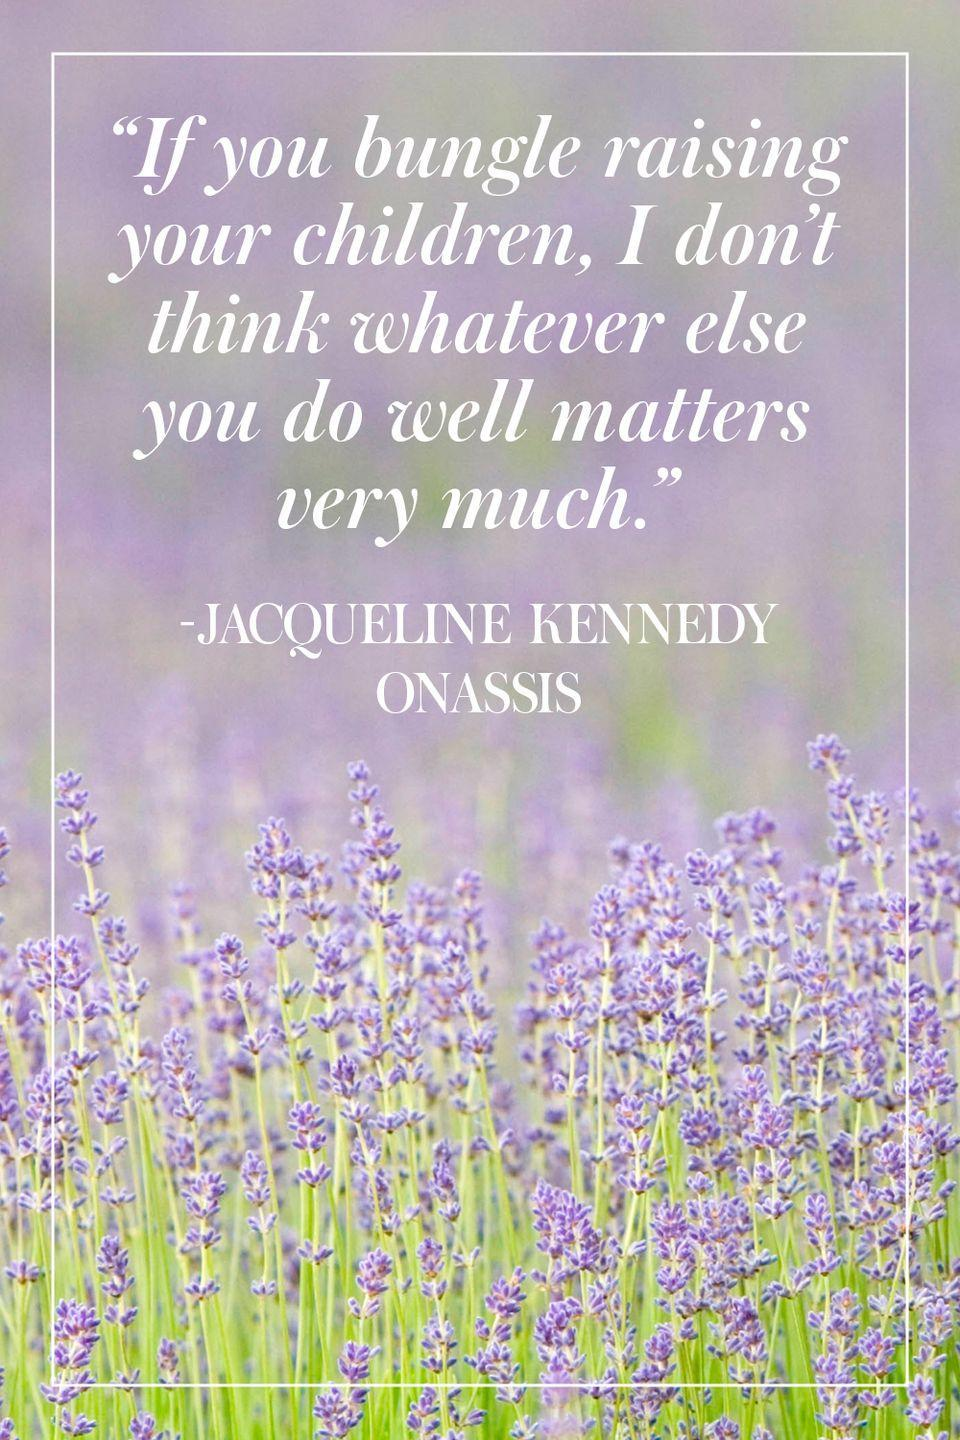 """<p>""""If you bungle raising your children, I don't think whatever else you do well matters very much."""" </p><p>- Jacqueline Kennedy Onassis</p>"""